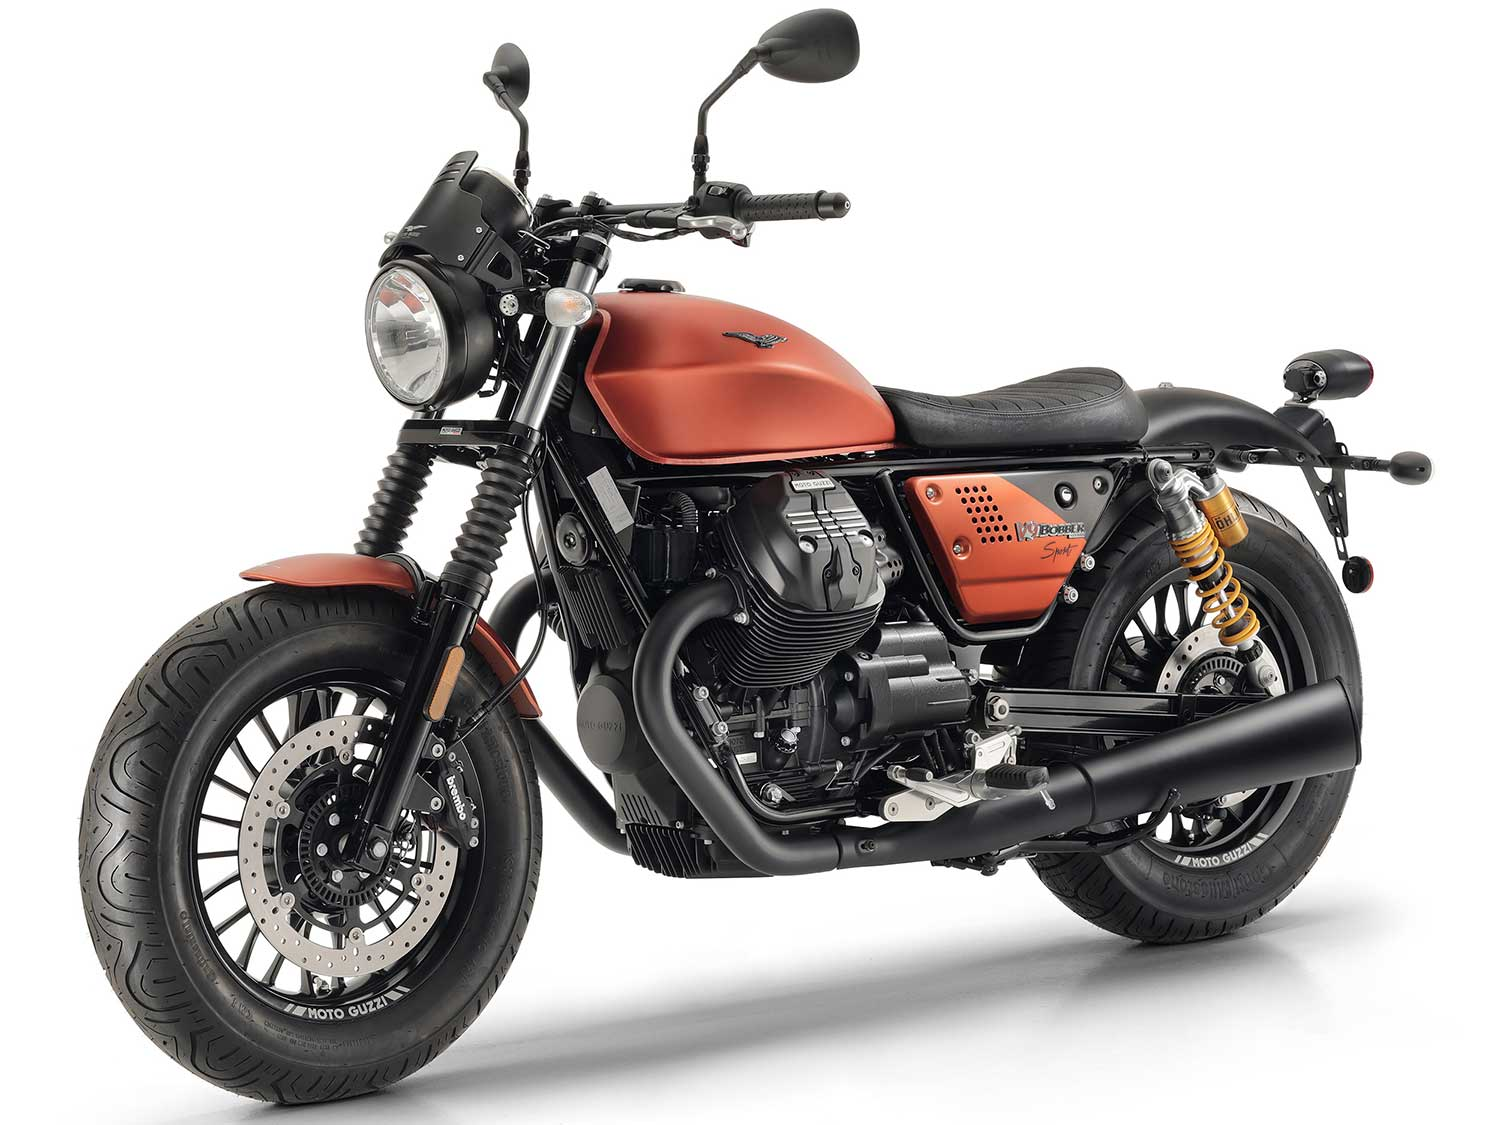 Moto Guzzi's New V9 Bobber Sport Is Unveiled In Italy | Motorcycle